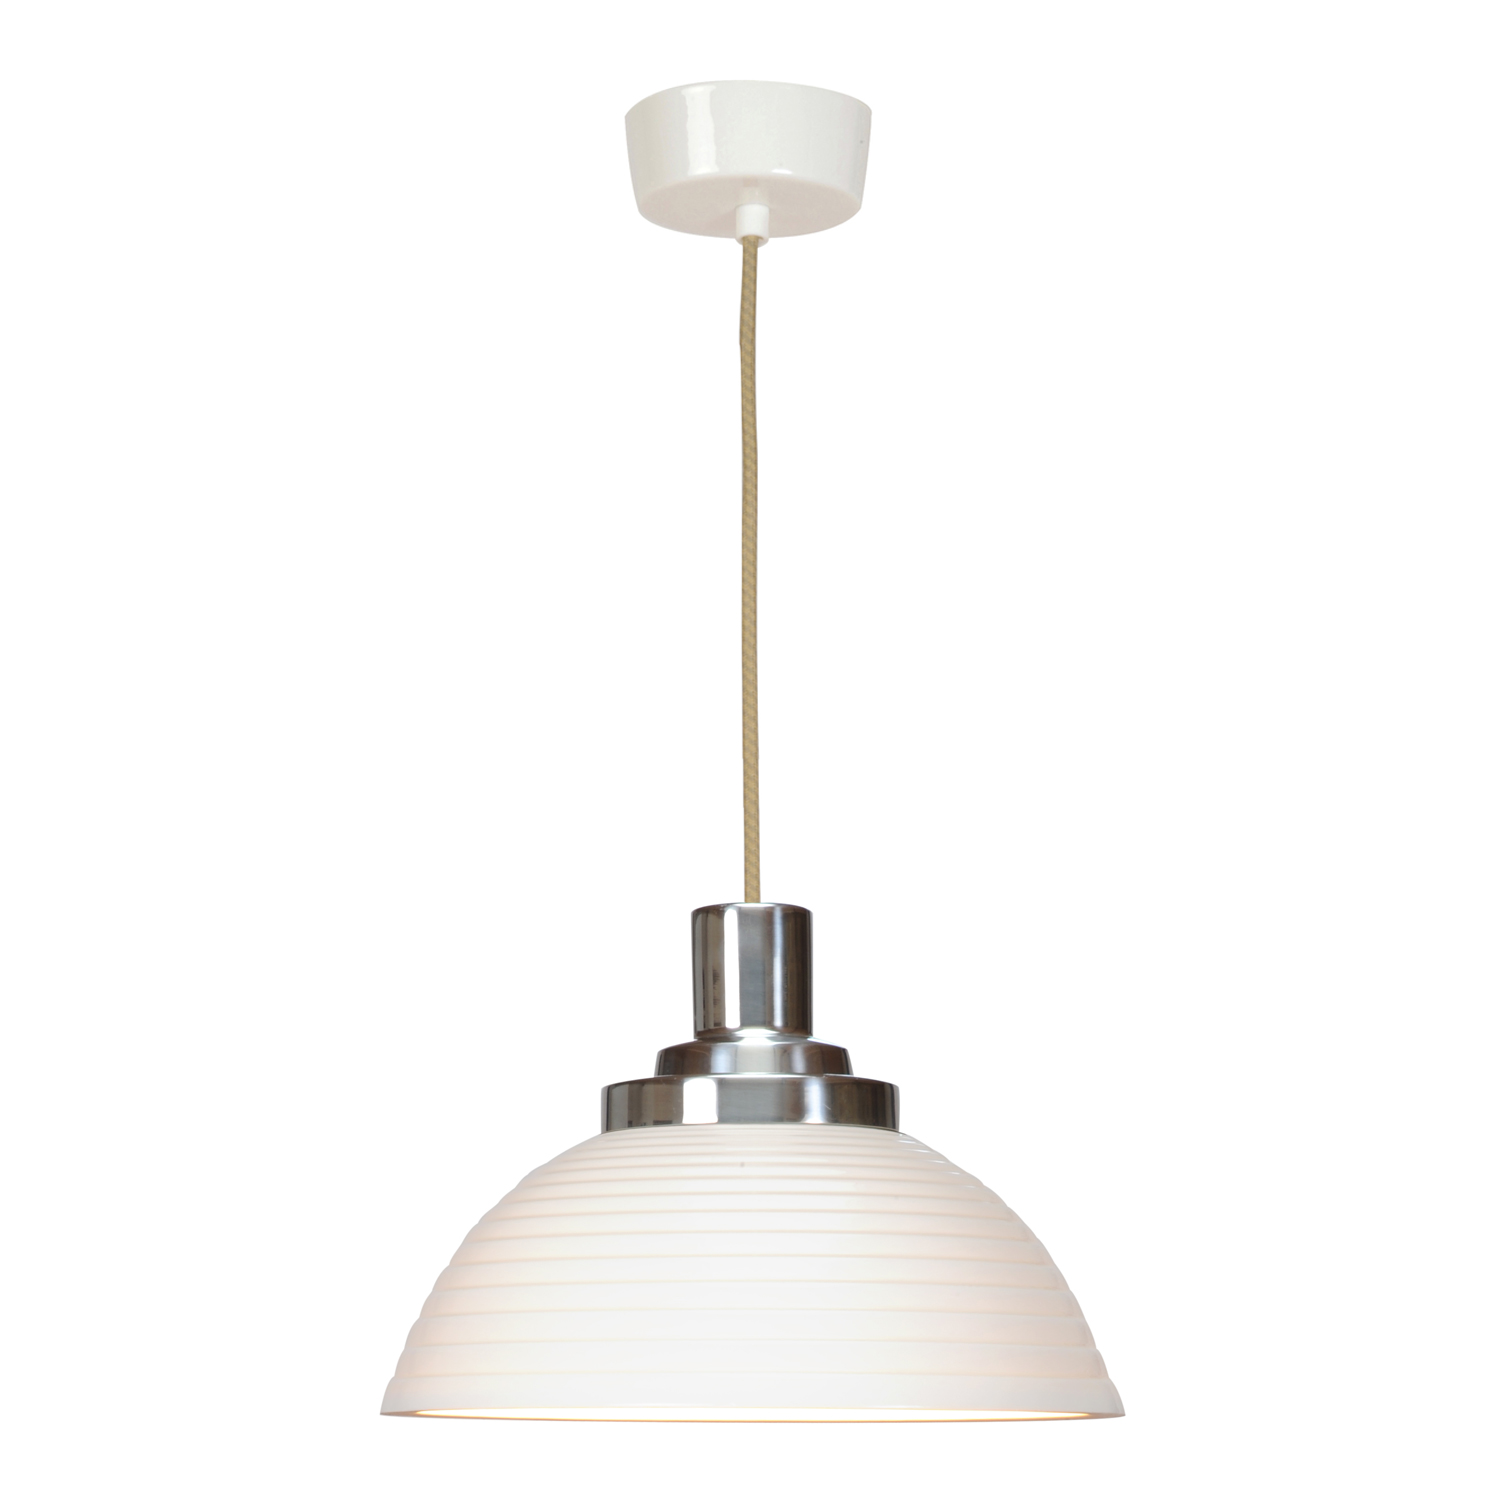 Cosmo Stepped Pendant Light, White